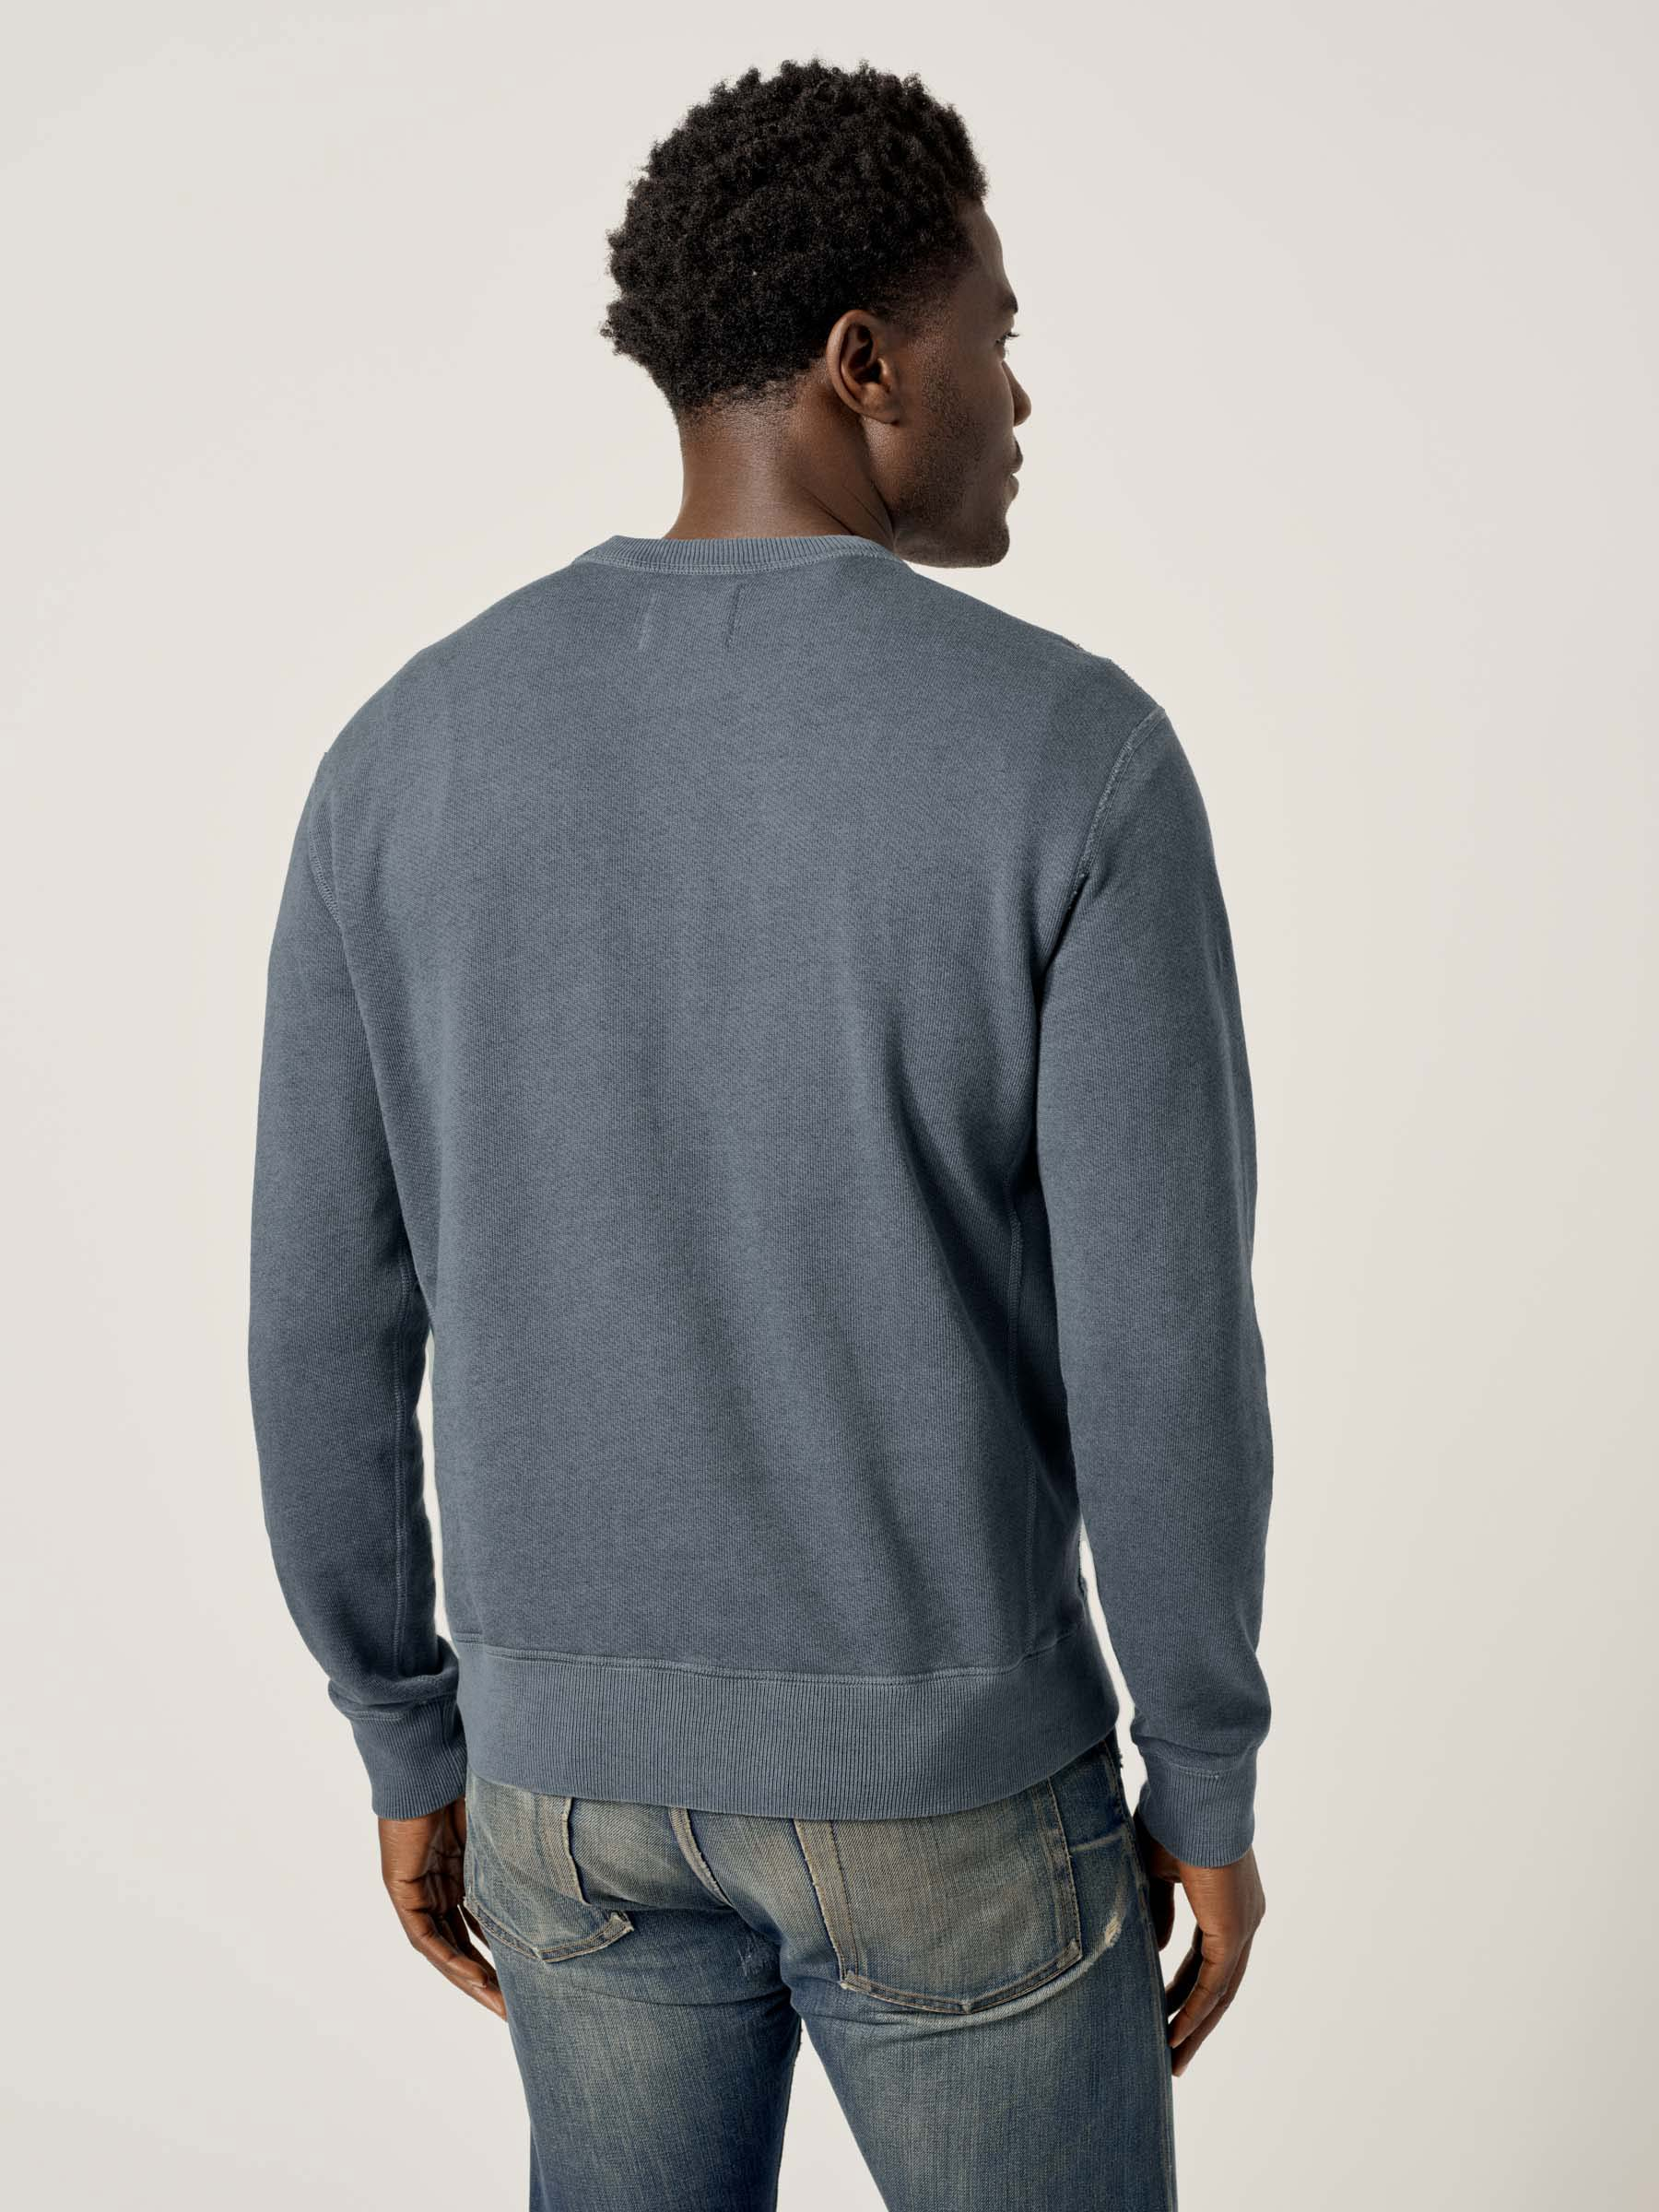 Buck Mason - Faded Blue Venice Wash Heathered Twill Terry Vintage Crew